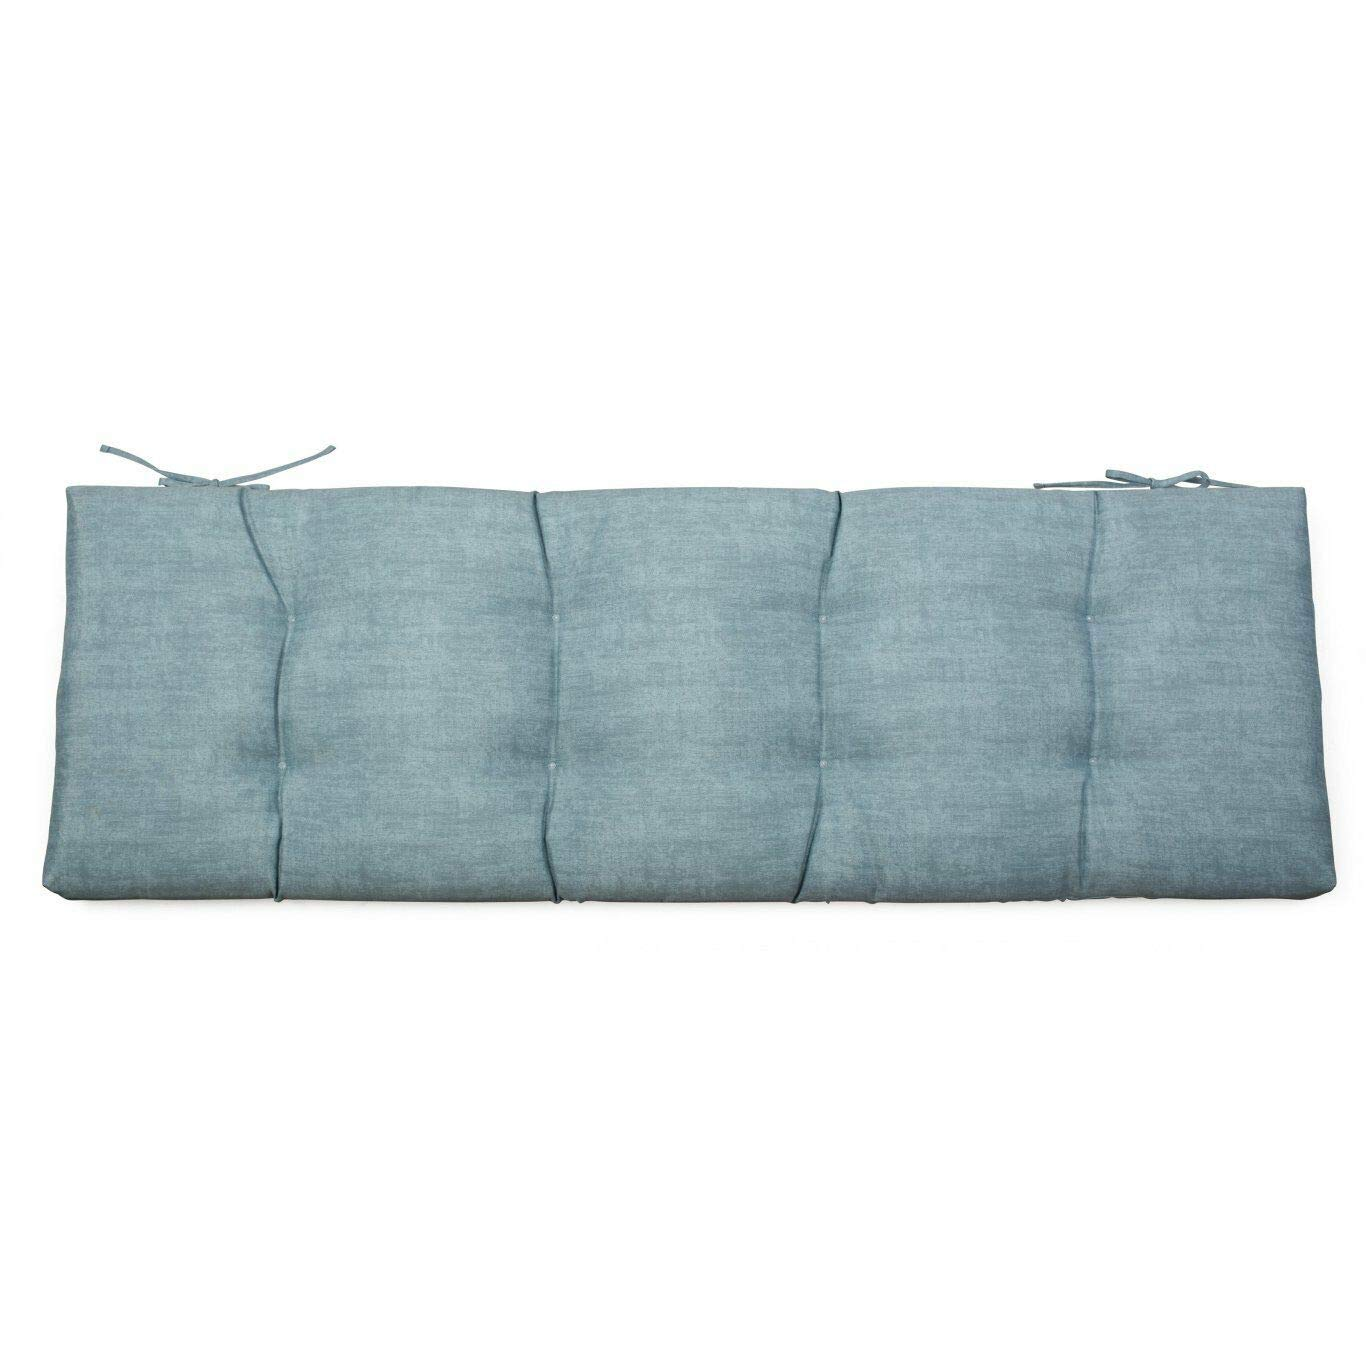 DN_HOM Wonderful Outdoor 55'' Tufted Bench Cushion Pad Collection for Patio Furniture (Light Blue) by DN_HOM